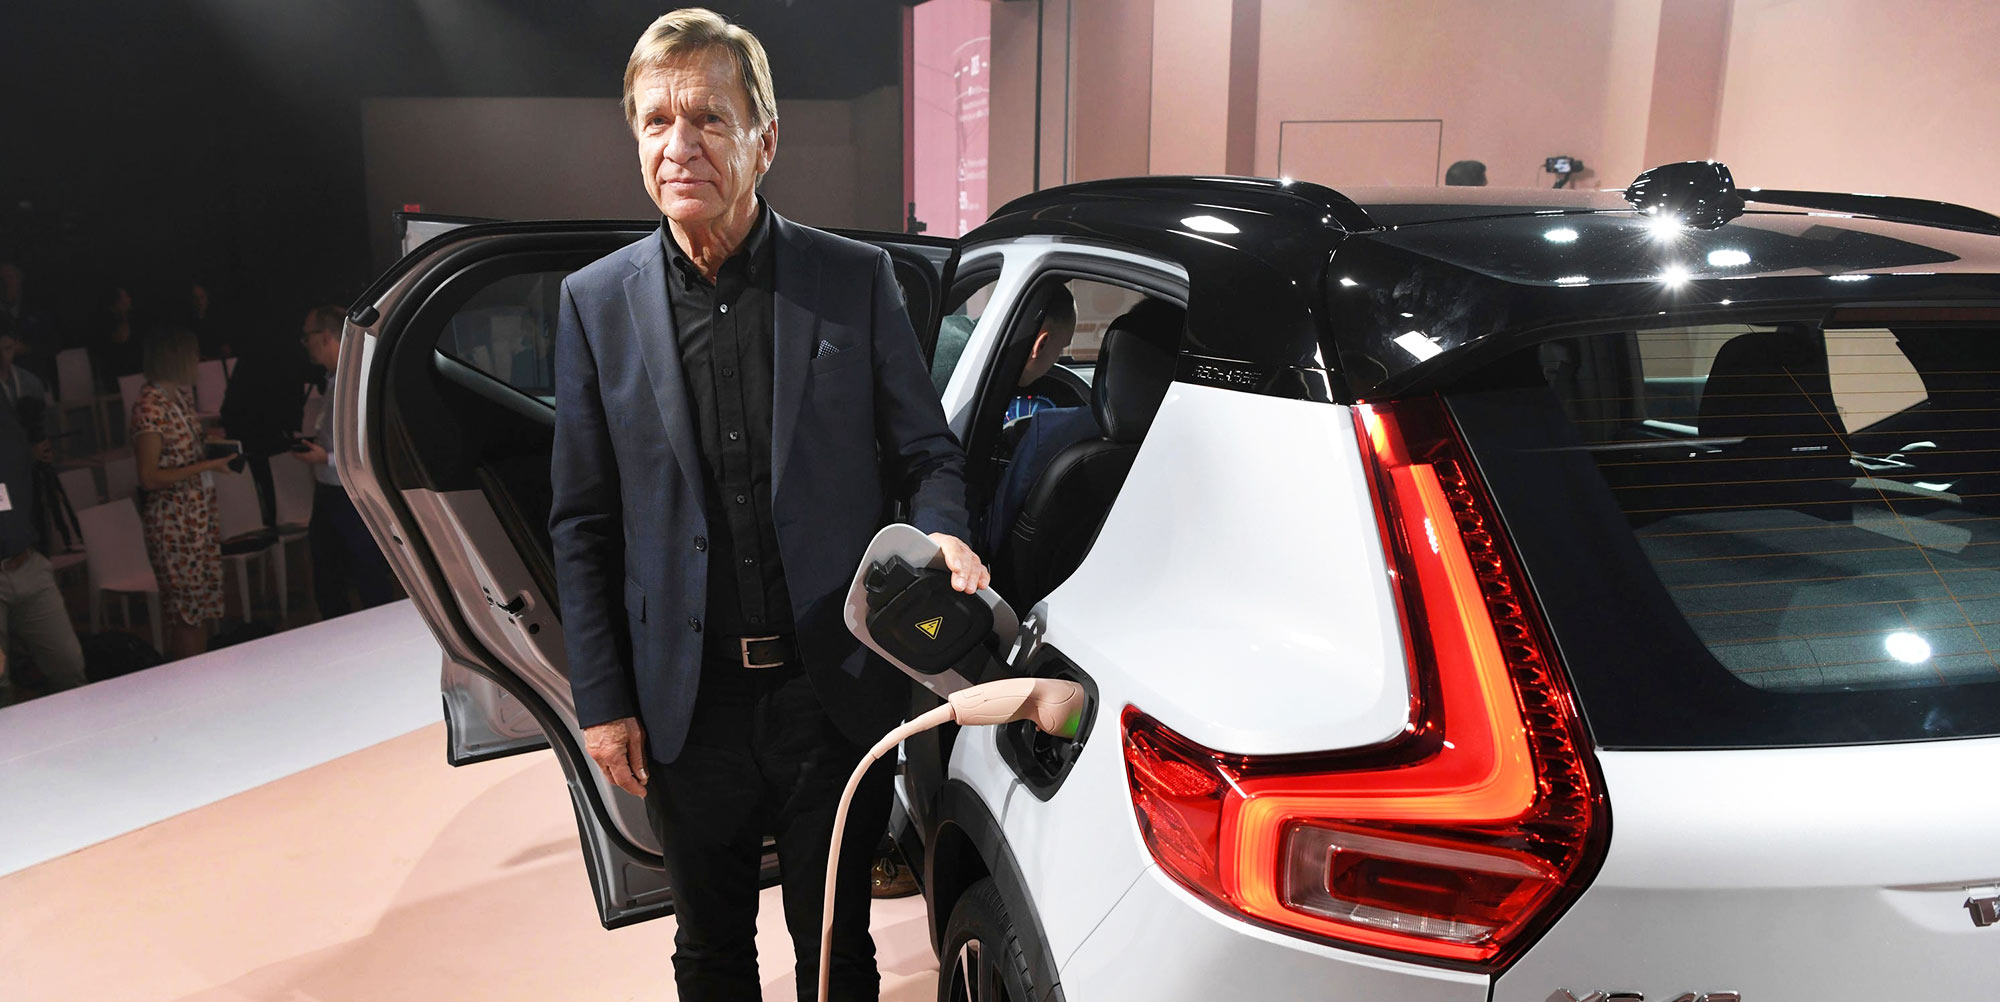 Volvo CEO: Pandemic will rapidly accelerate shift to electric cars